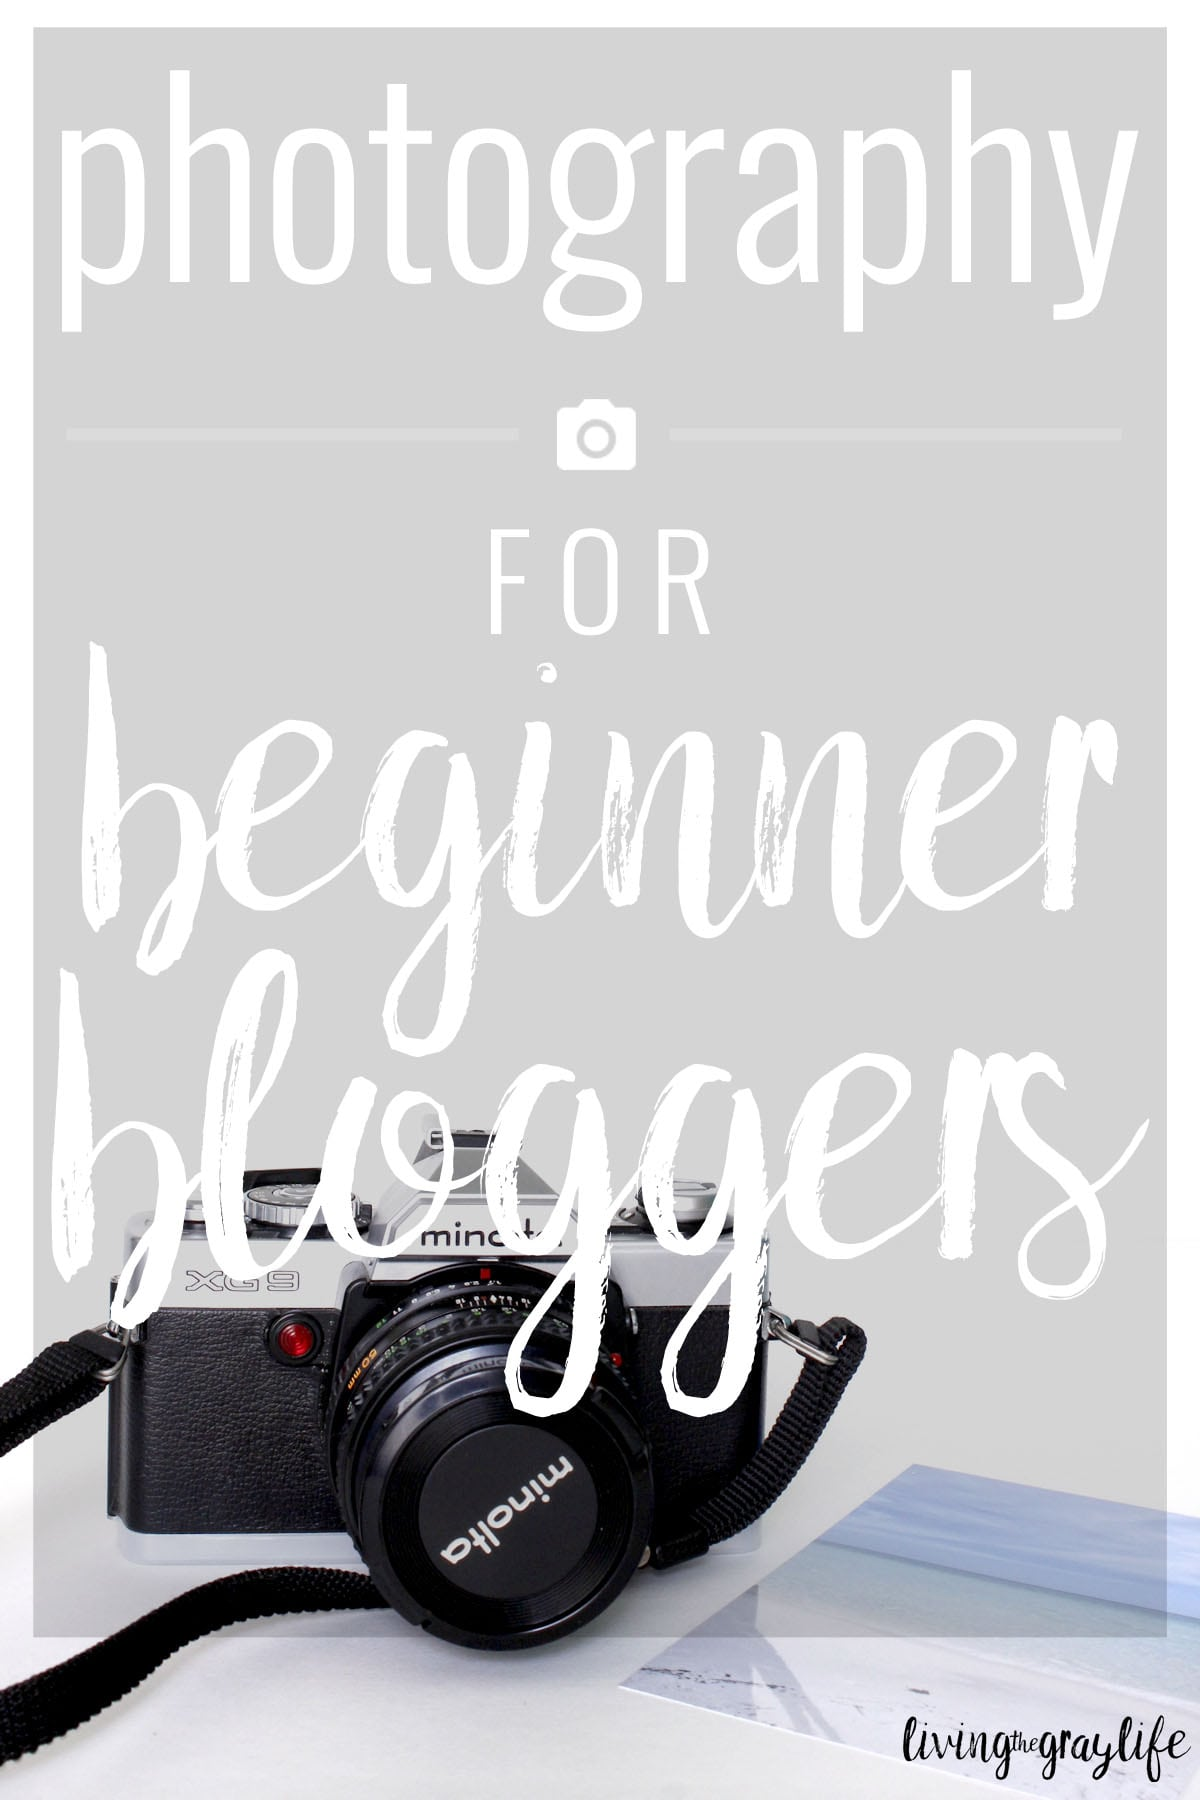 Are you a beginner blogger looking to improve your photography? Check out my tips on lighting, backdrops, cameras, and what to do if you're crunched for time!